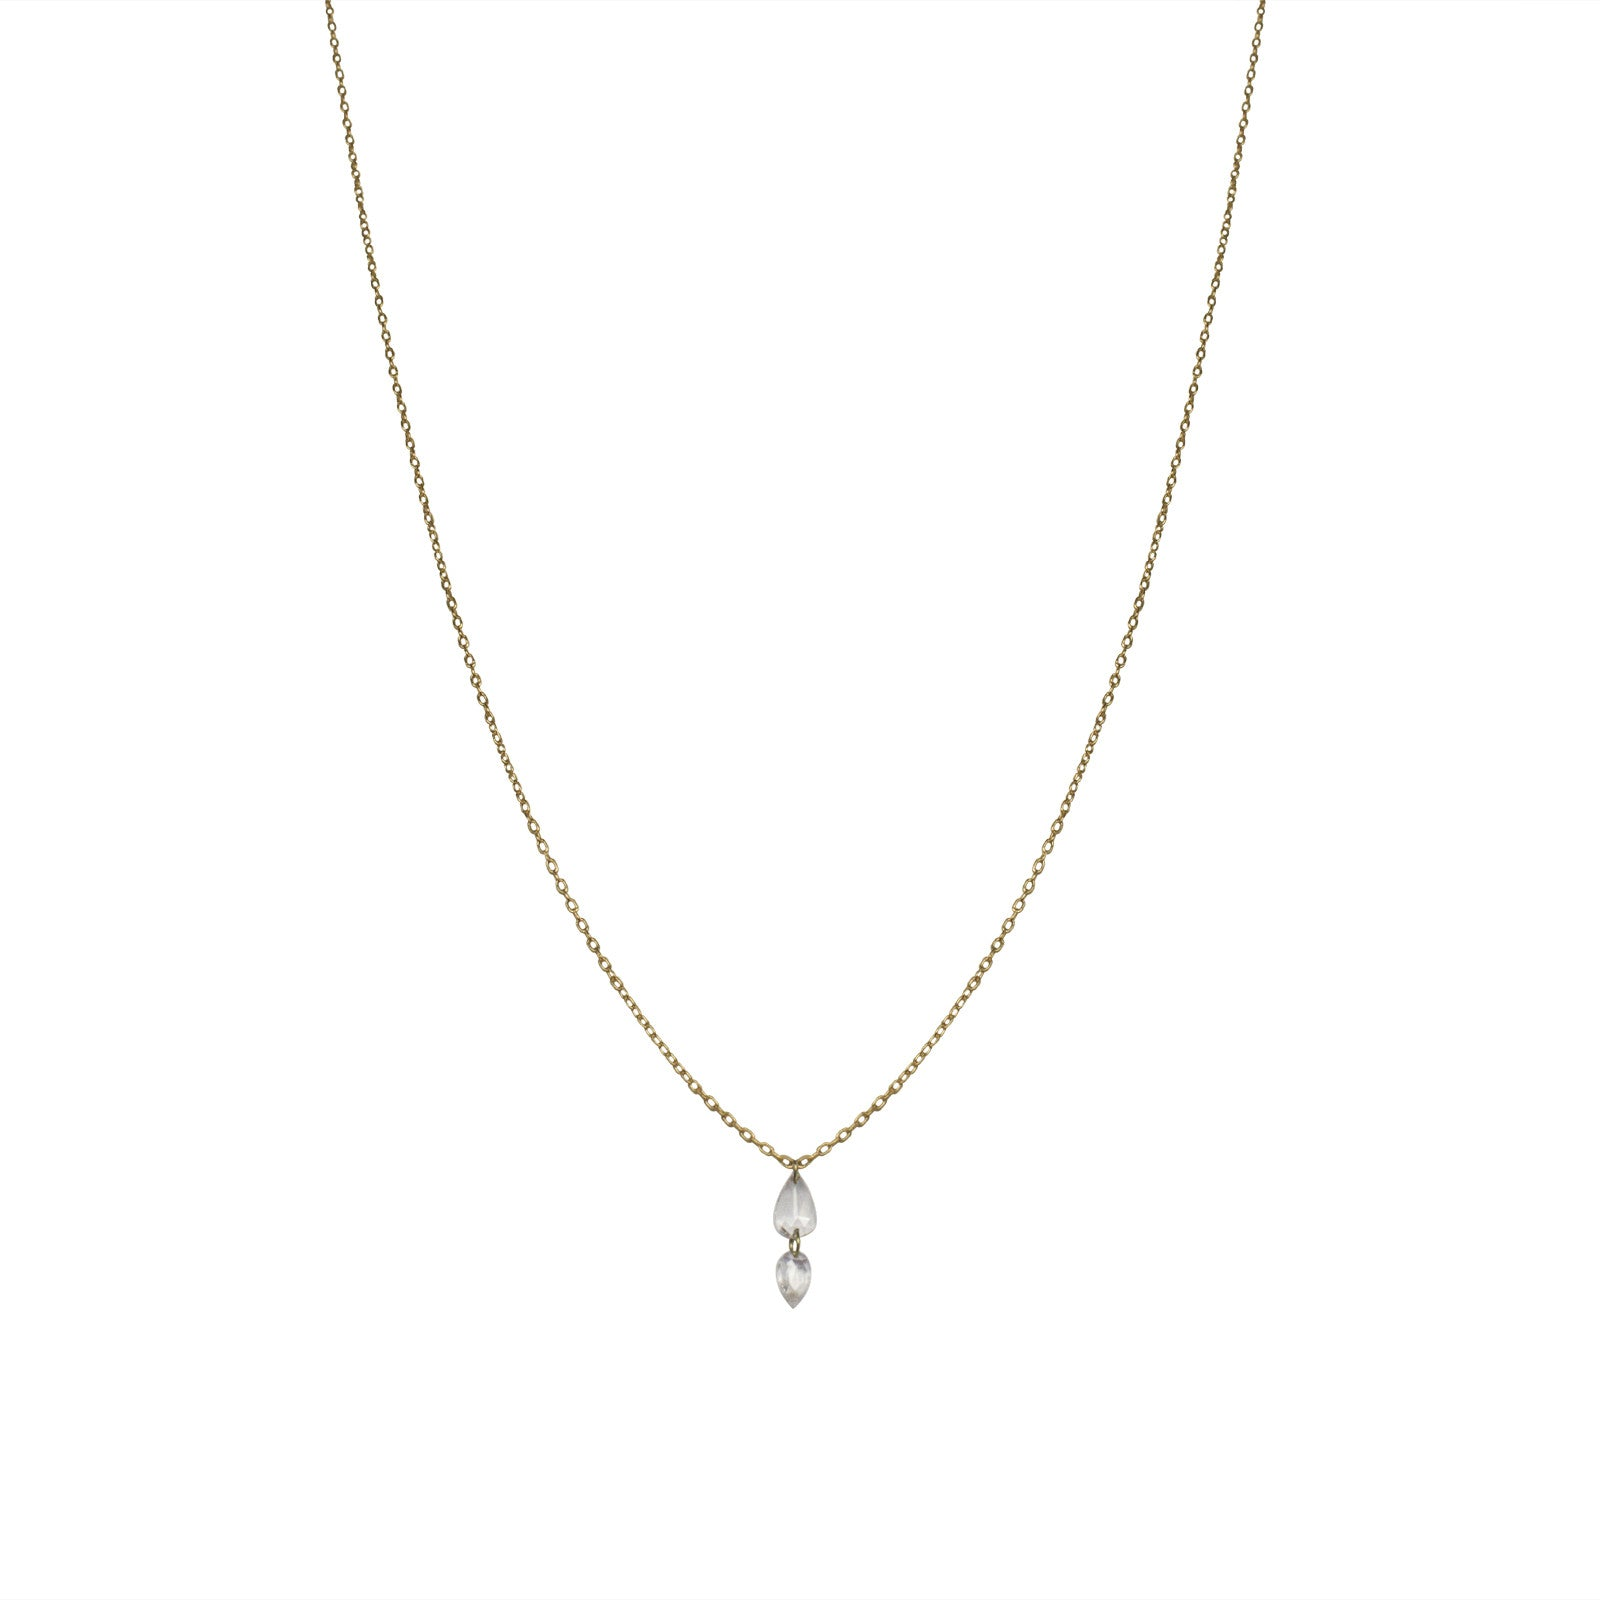 14k yellow gold with white rosecut diamonds double drop rosecut diamond necklace